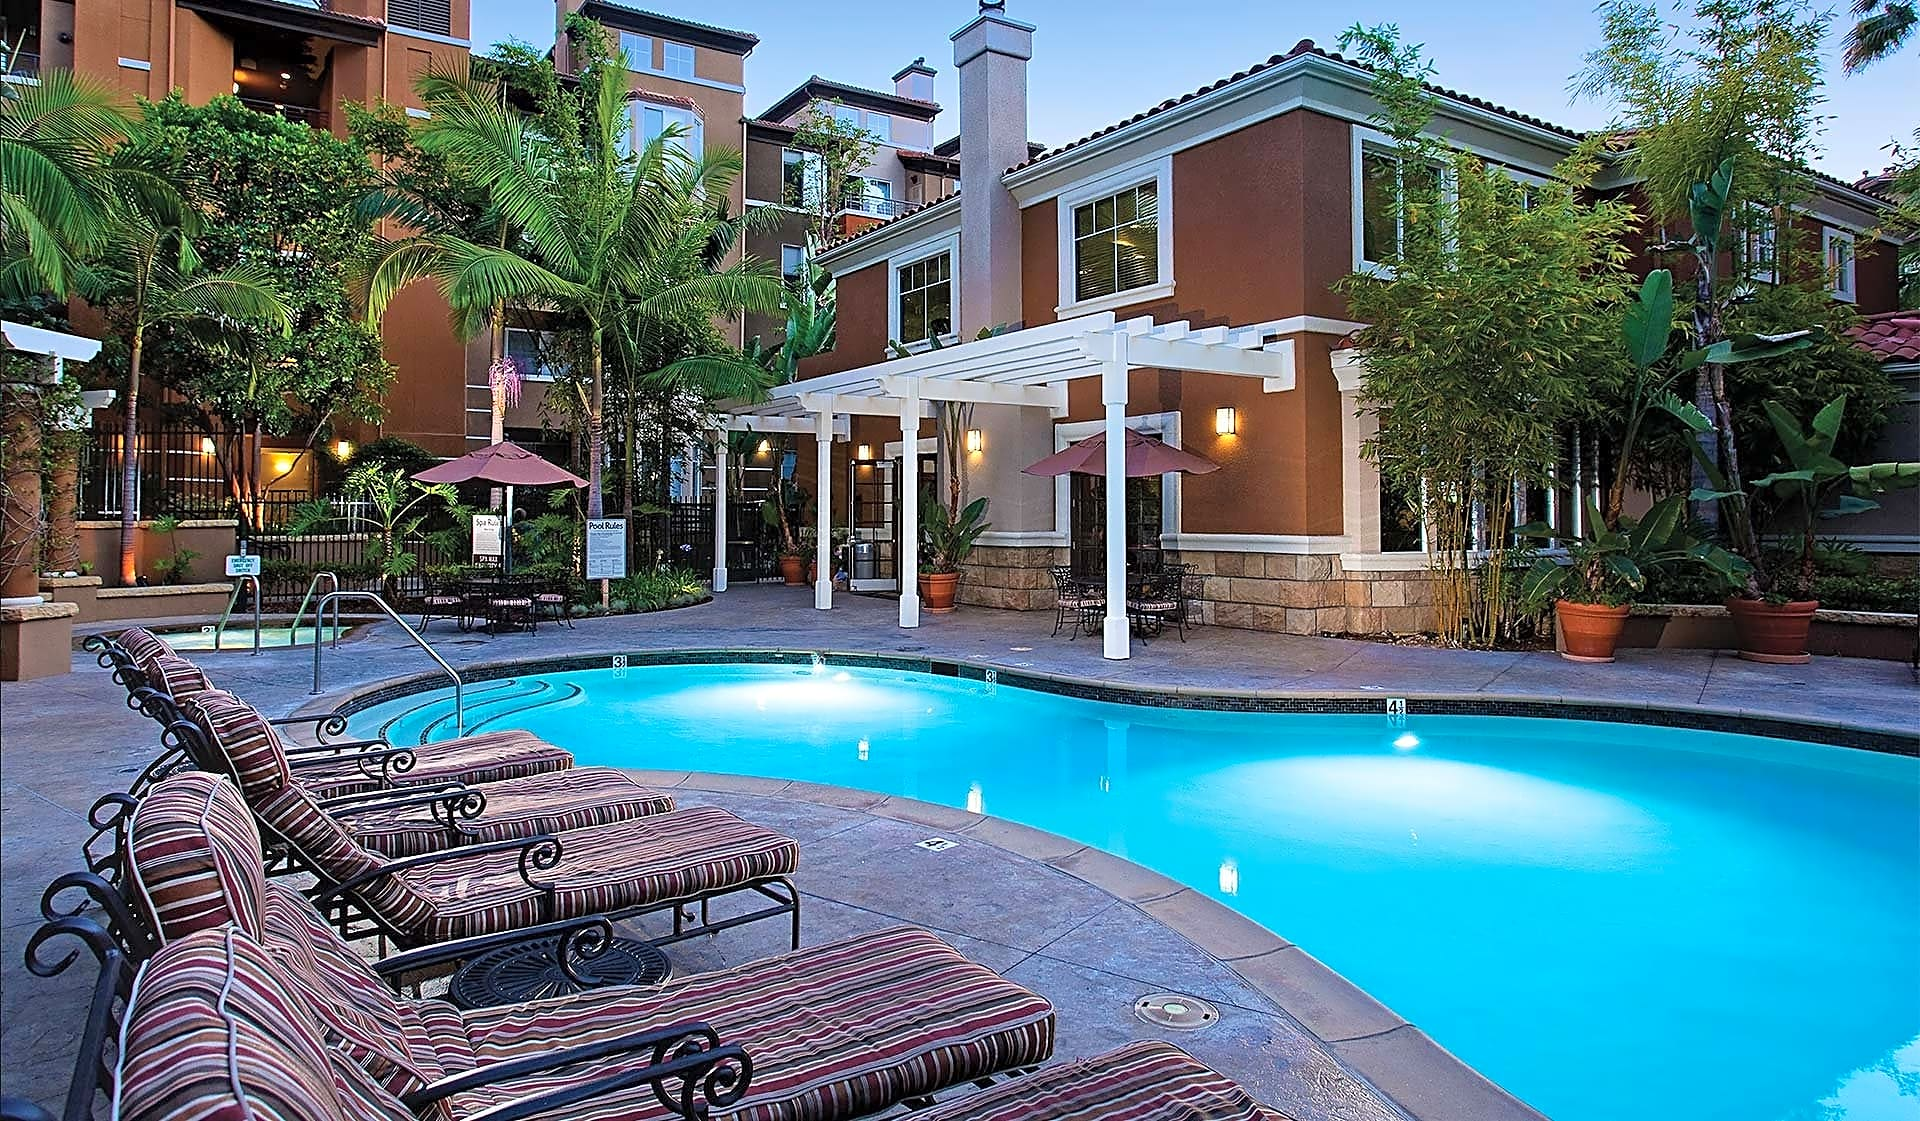 Take a dip in our swimming pool